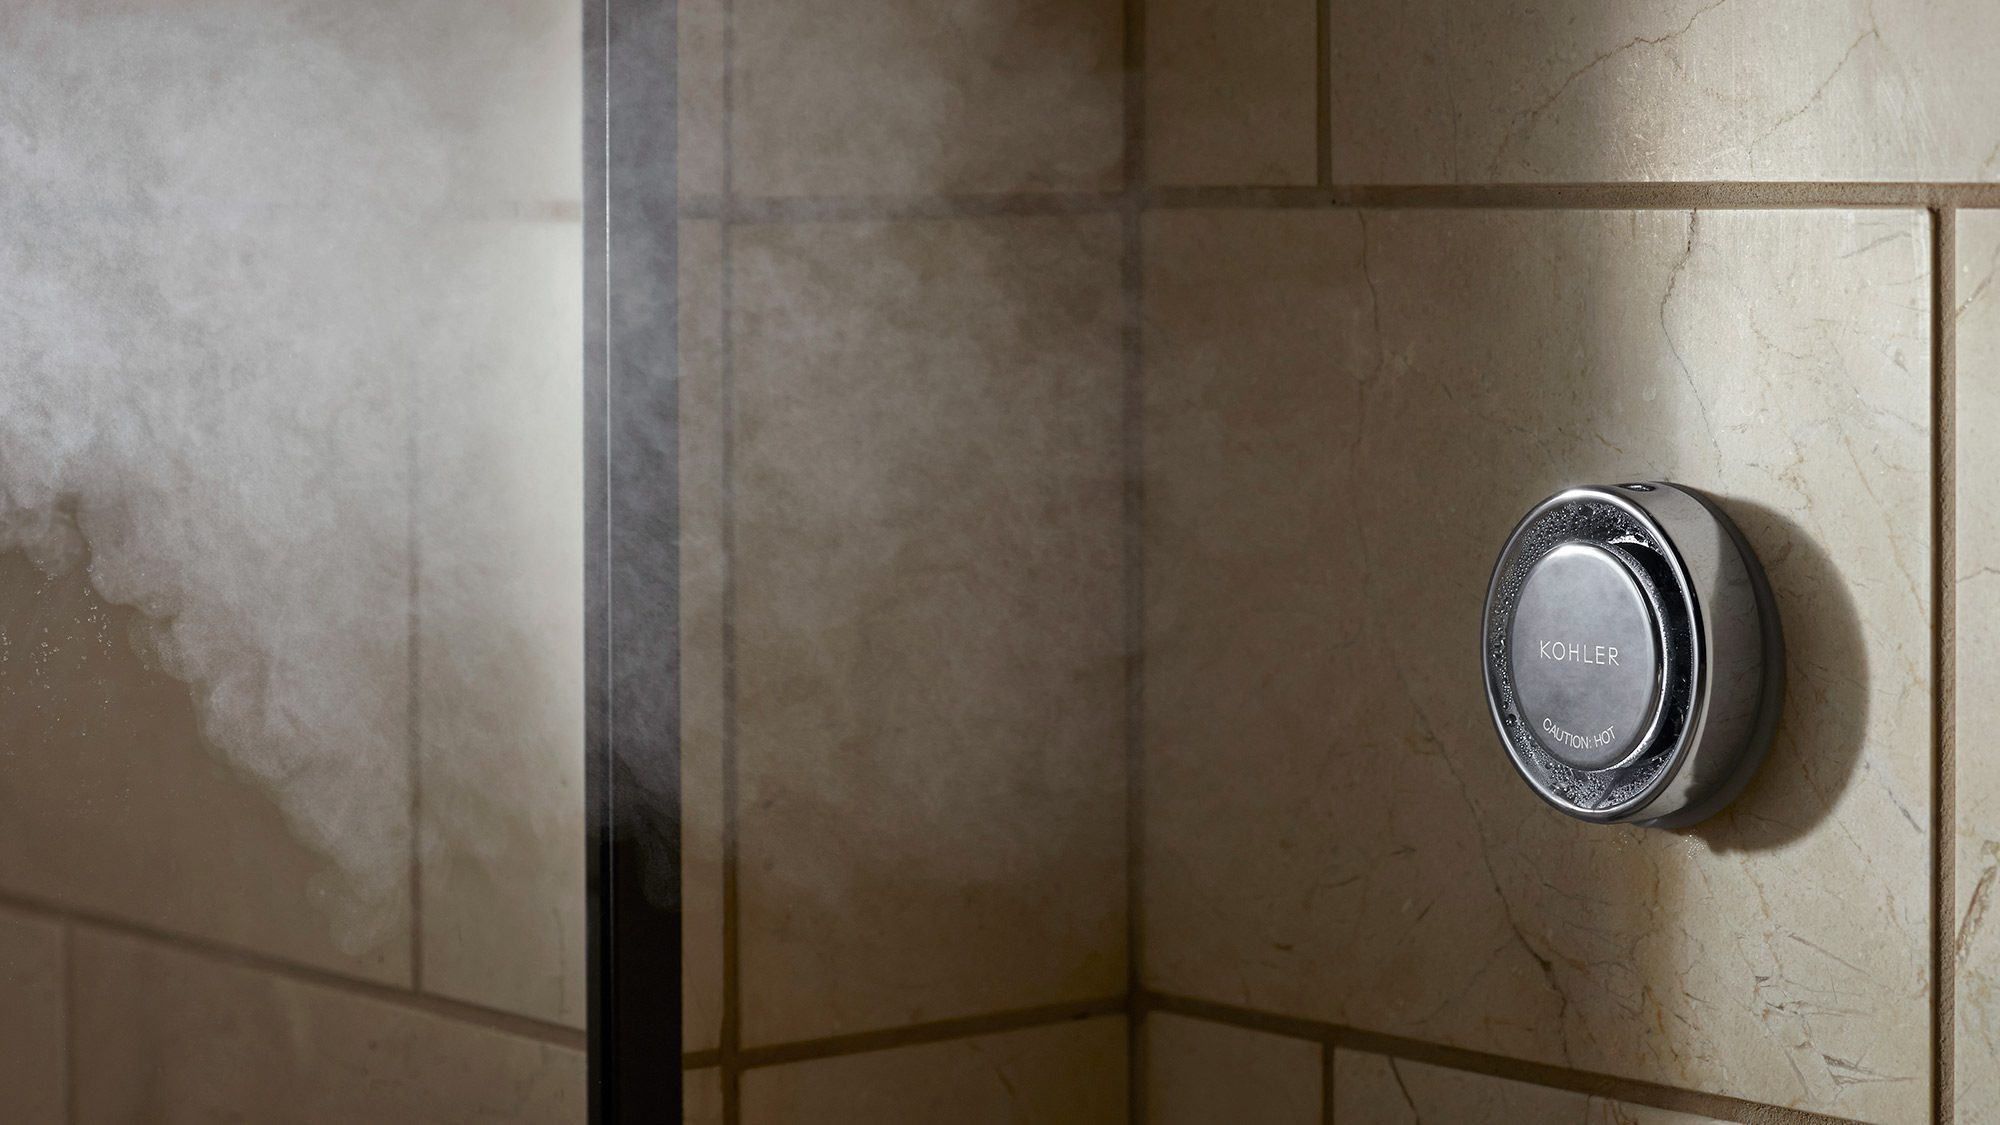 Steam shower generator